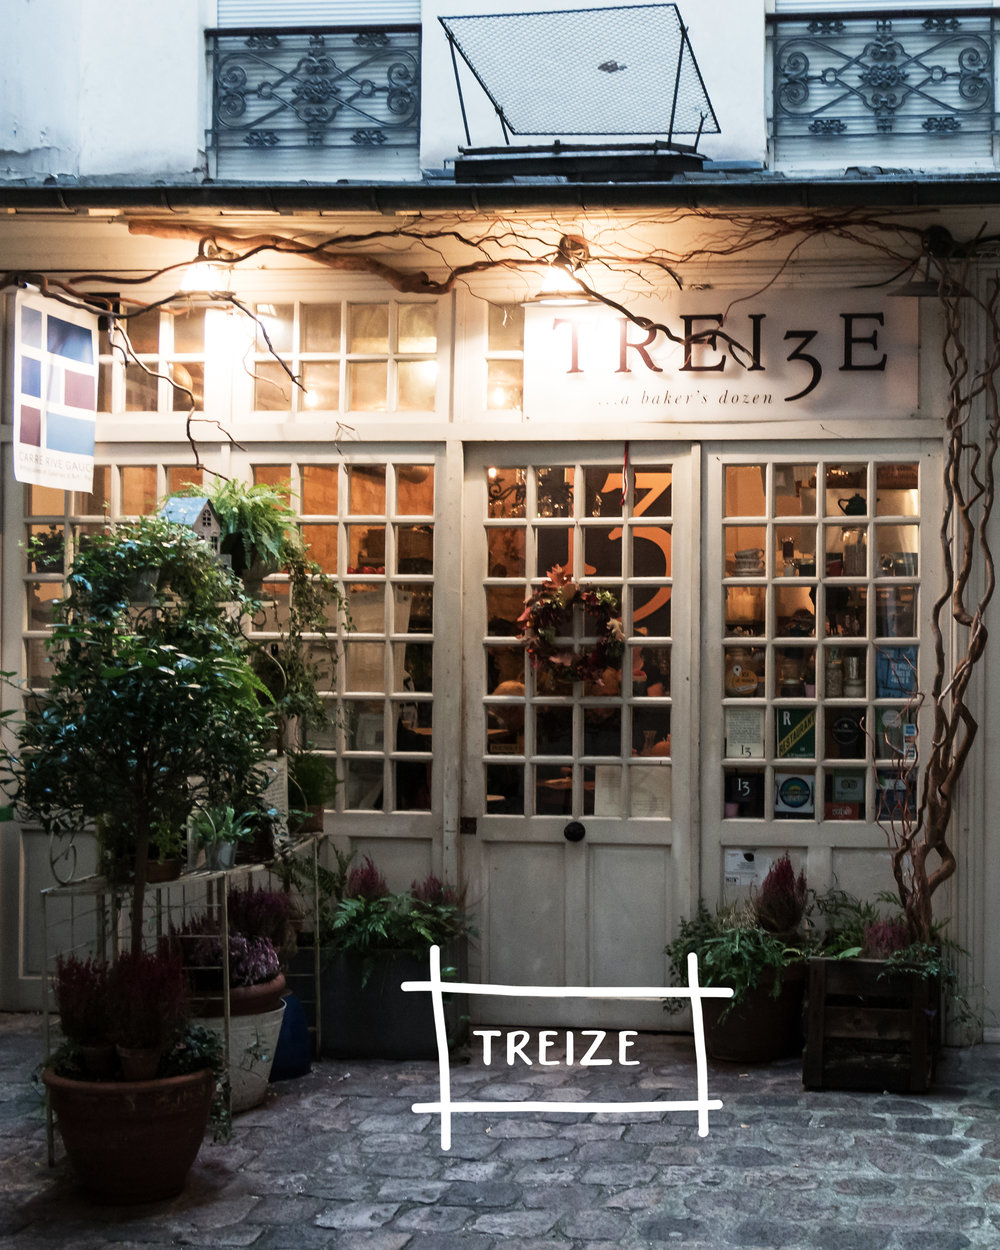 Five Restaurants In Europe For A Unique & Authentic Experience | Treize, Paris France | Sea of Atlas